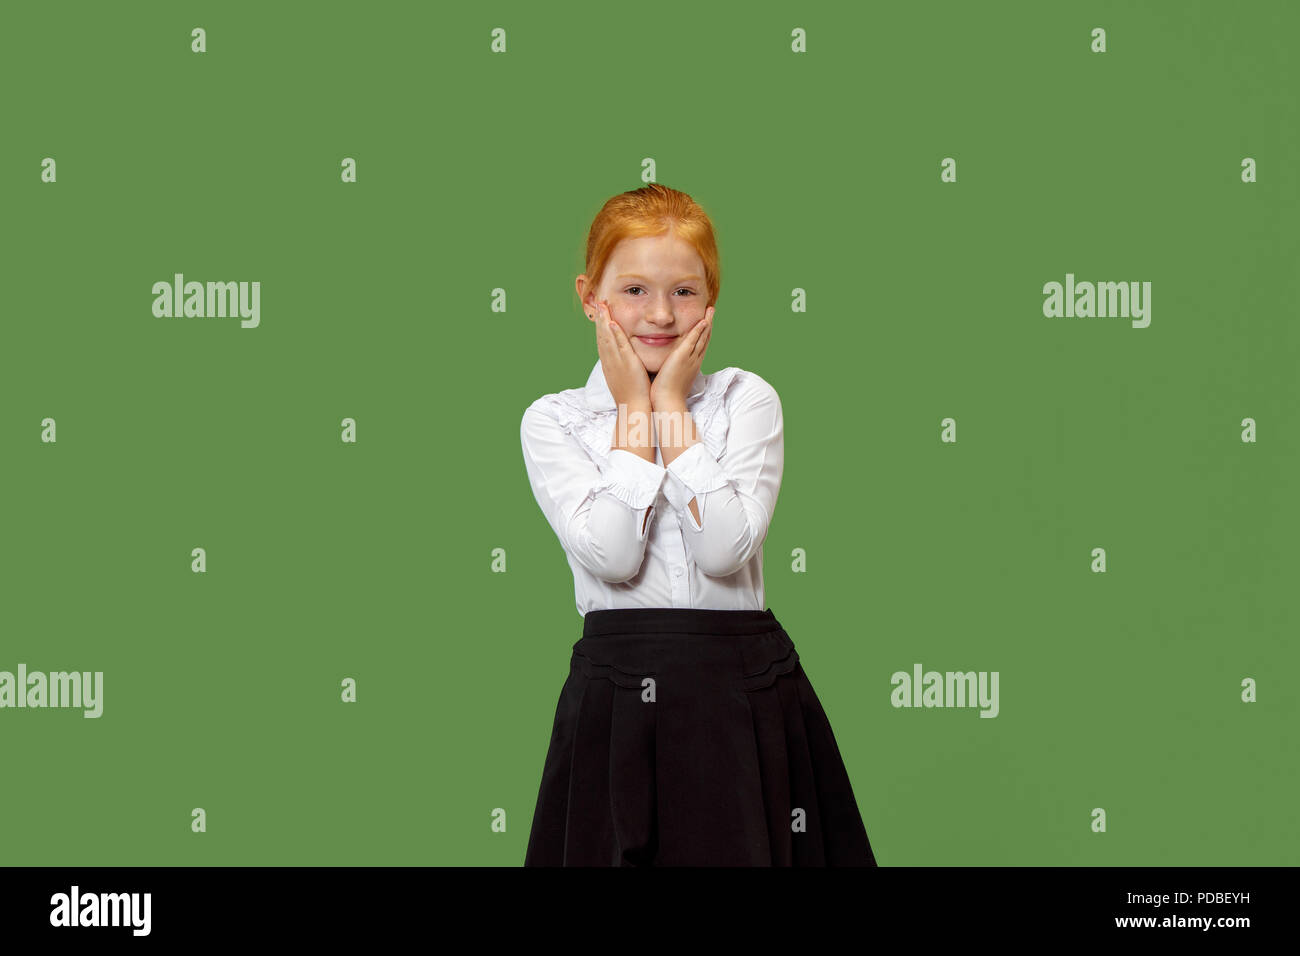 Happy teen girl standing, smiling isolated on trendy green studio background. Beautiful female half-length portrait. Human emotions, facial expression concept. - Stock Image